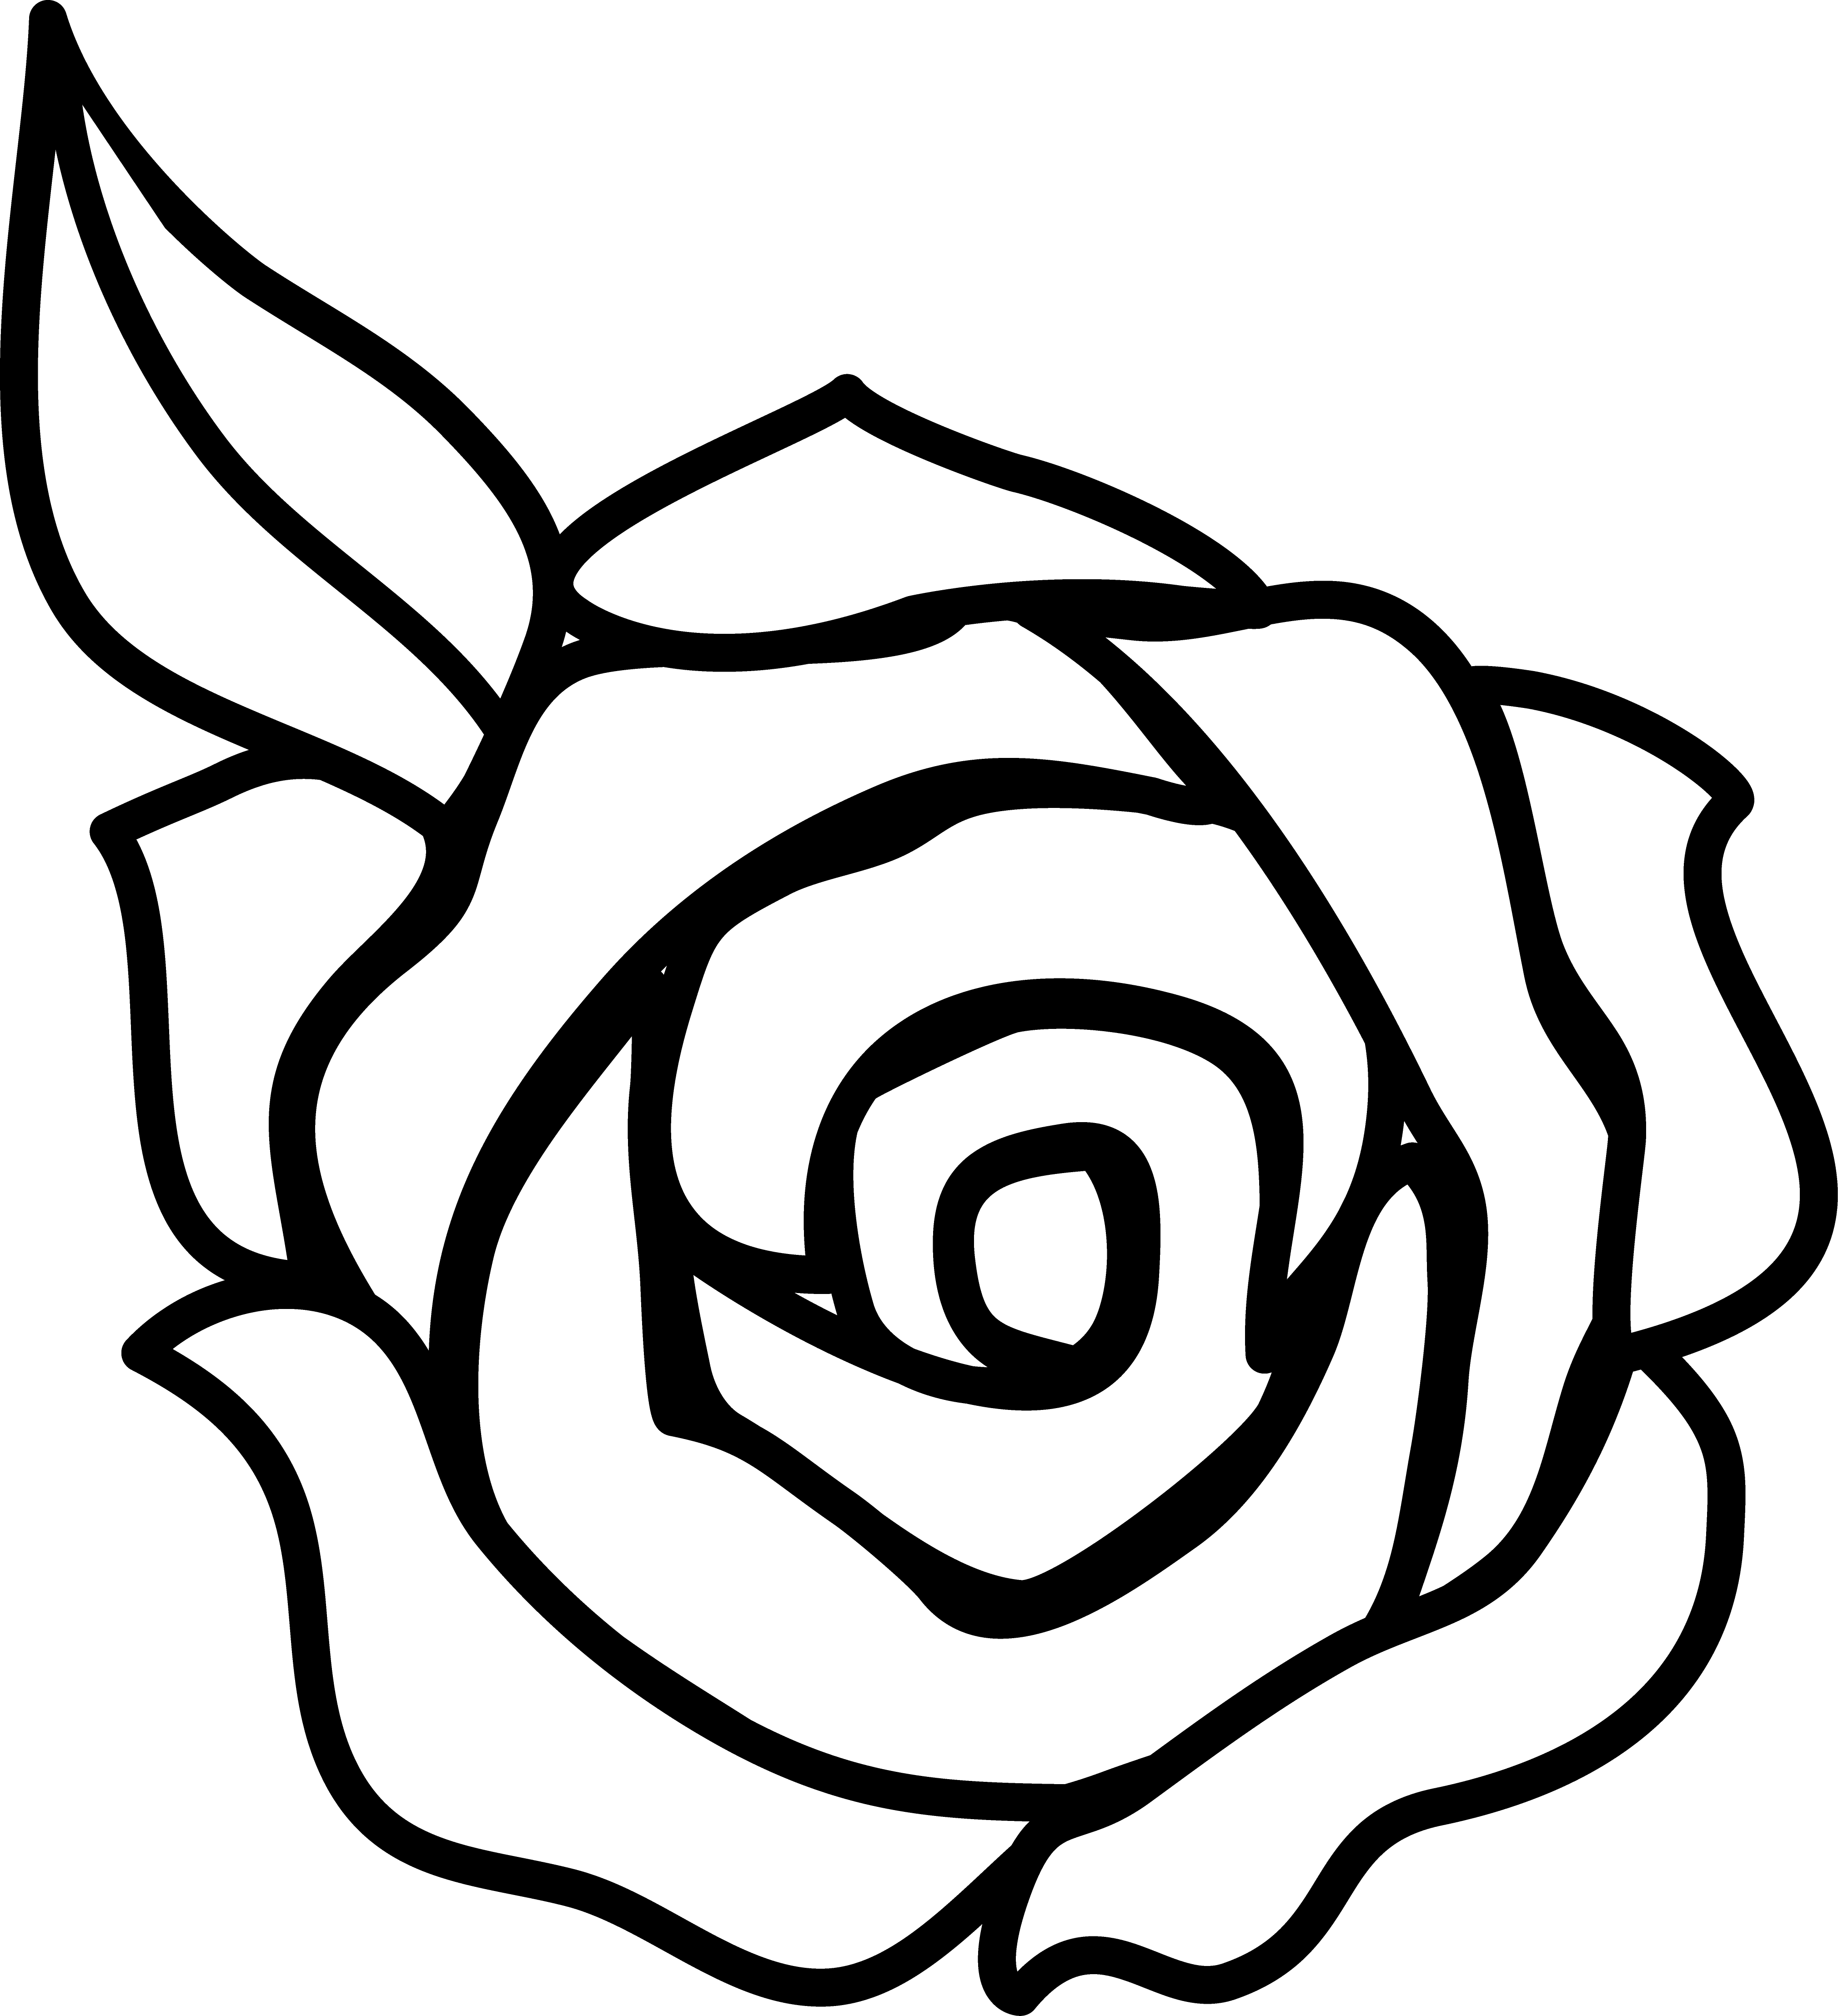 R9ose clipart graphic transparent stock White rose clip art clipart images gallery for free download ... graphic transparent stock